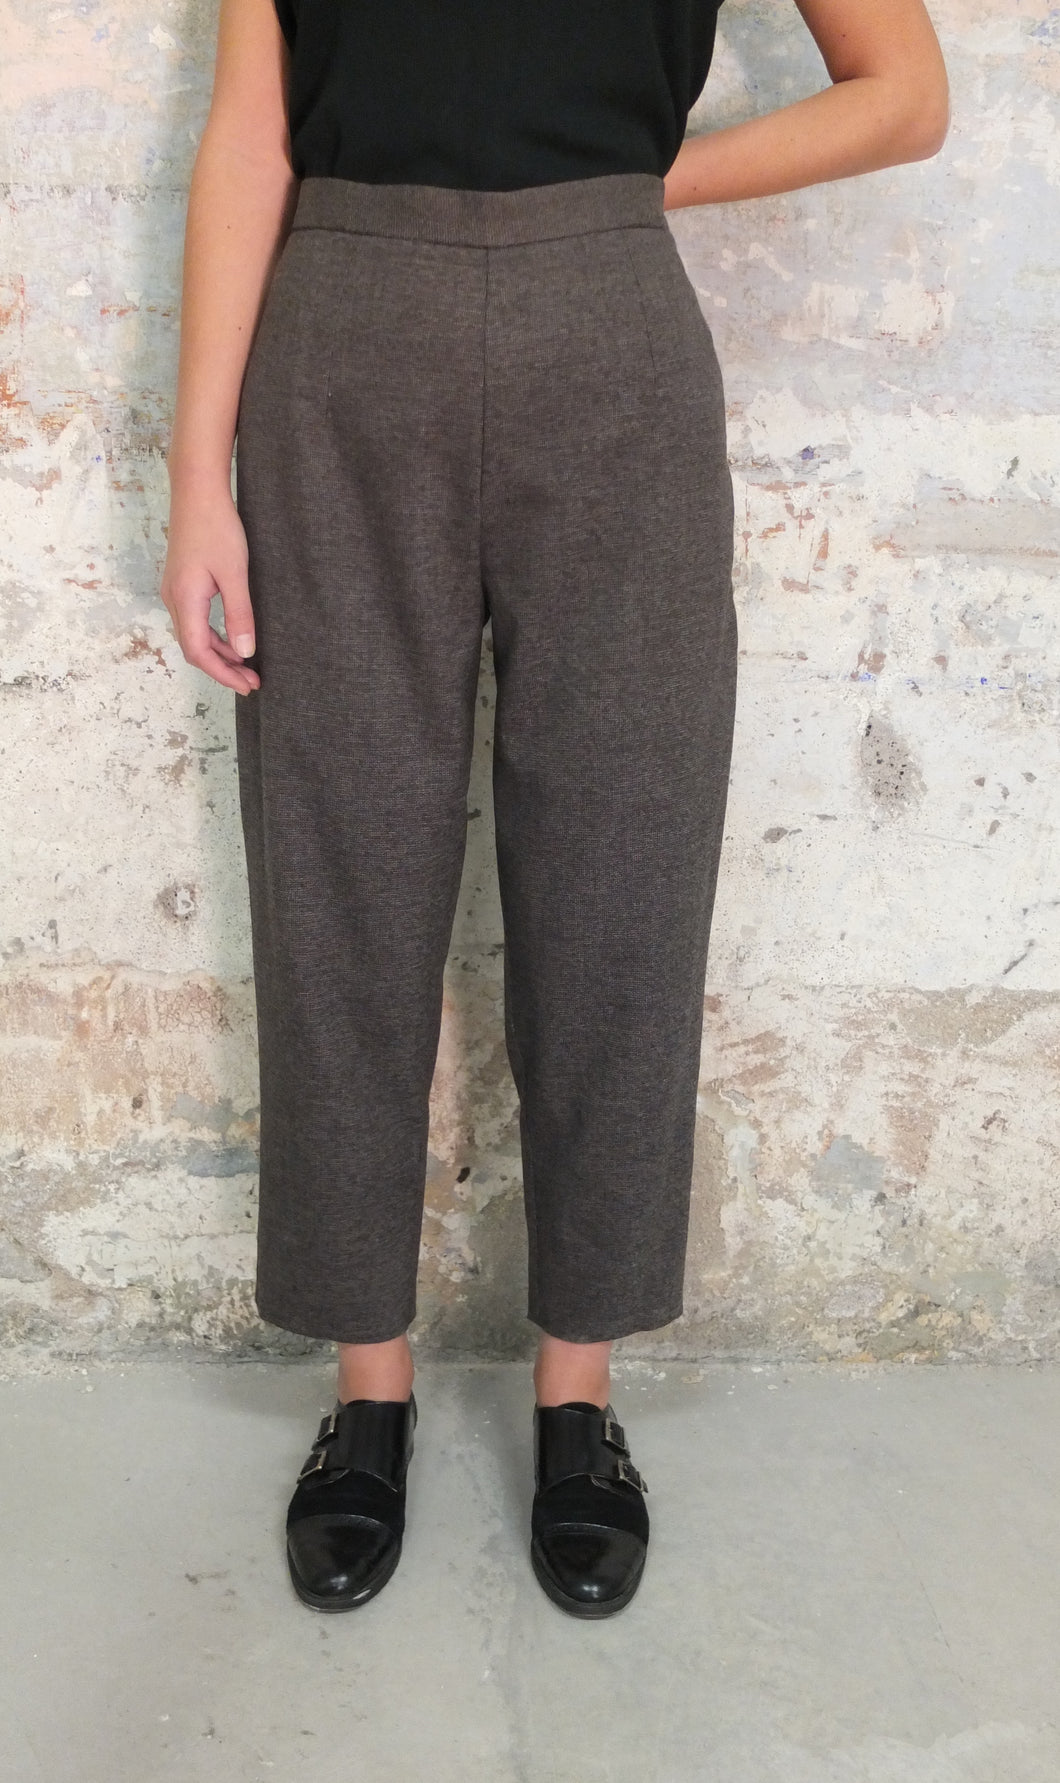 Trousers, Pantalones, Barcelona, Lantoki, Fashion, Black, Negro, Brown, Marrón, shop online, tienda online